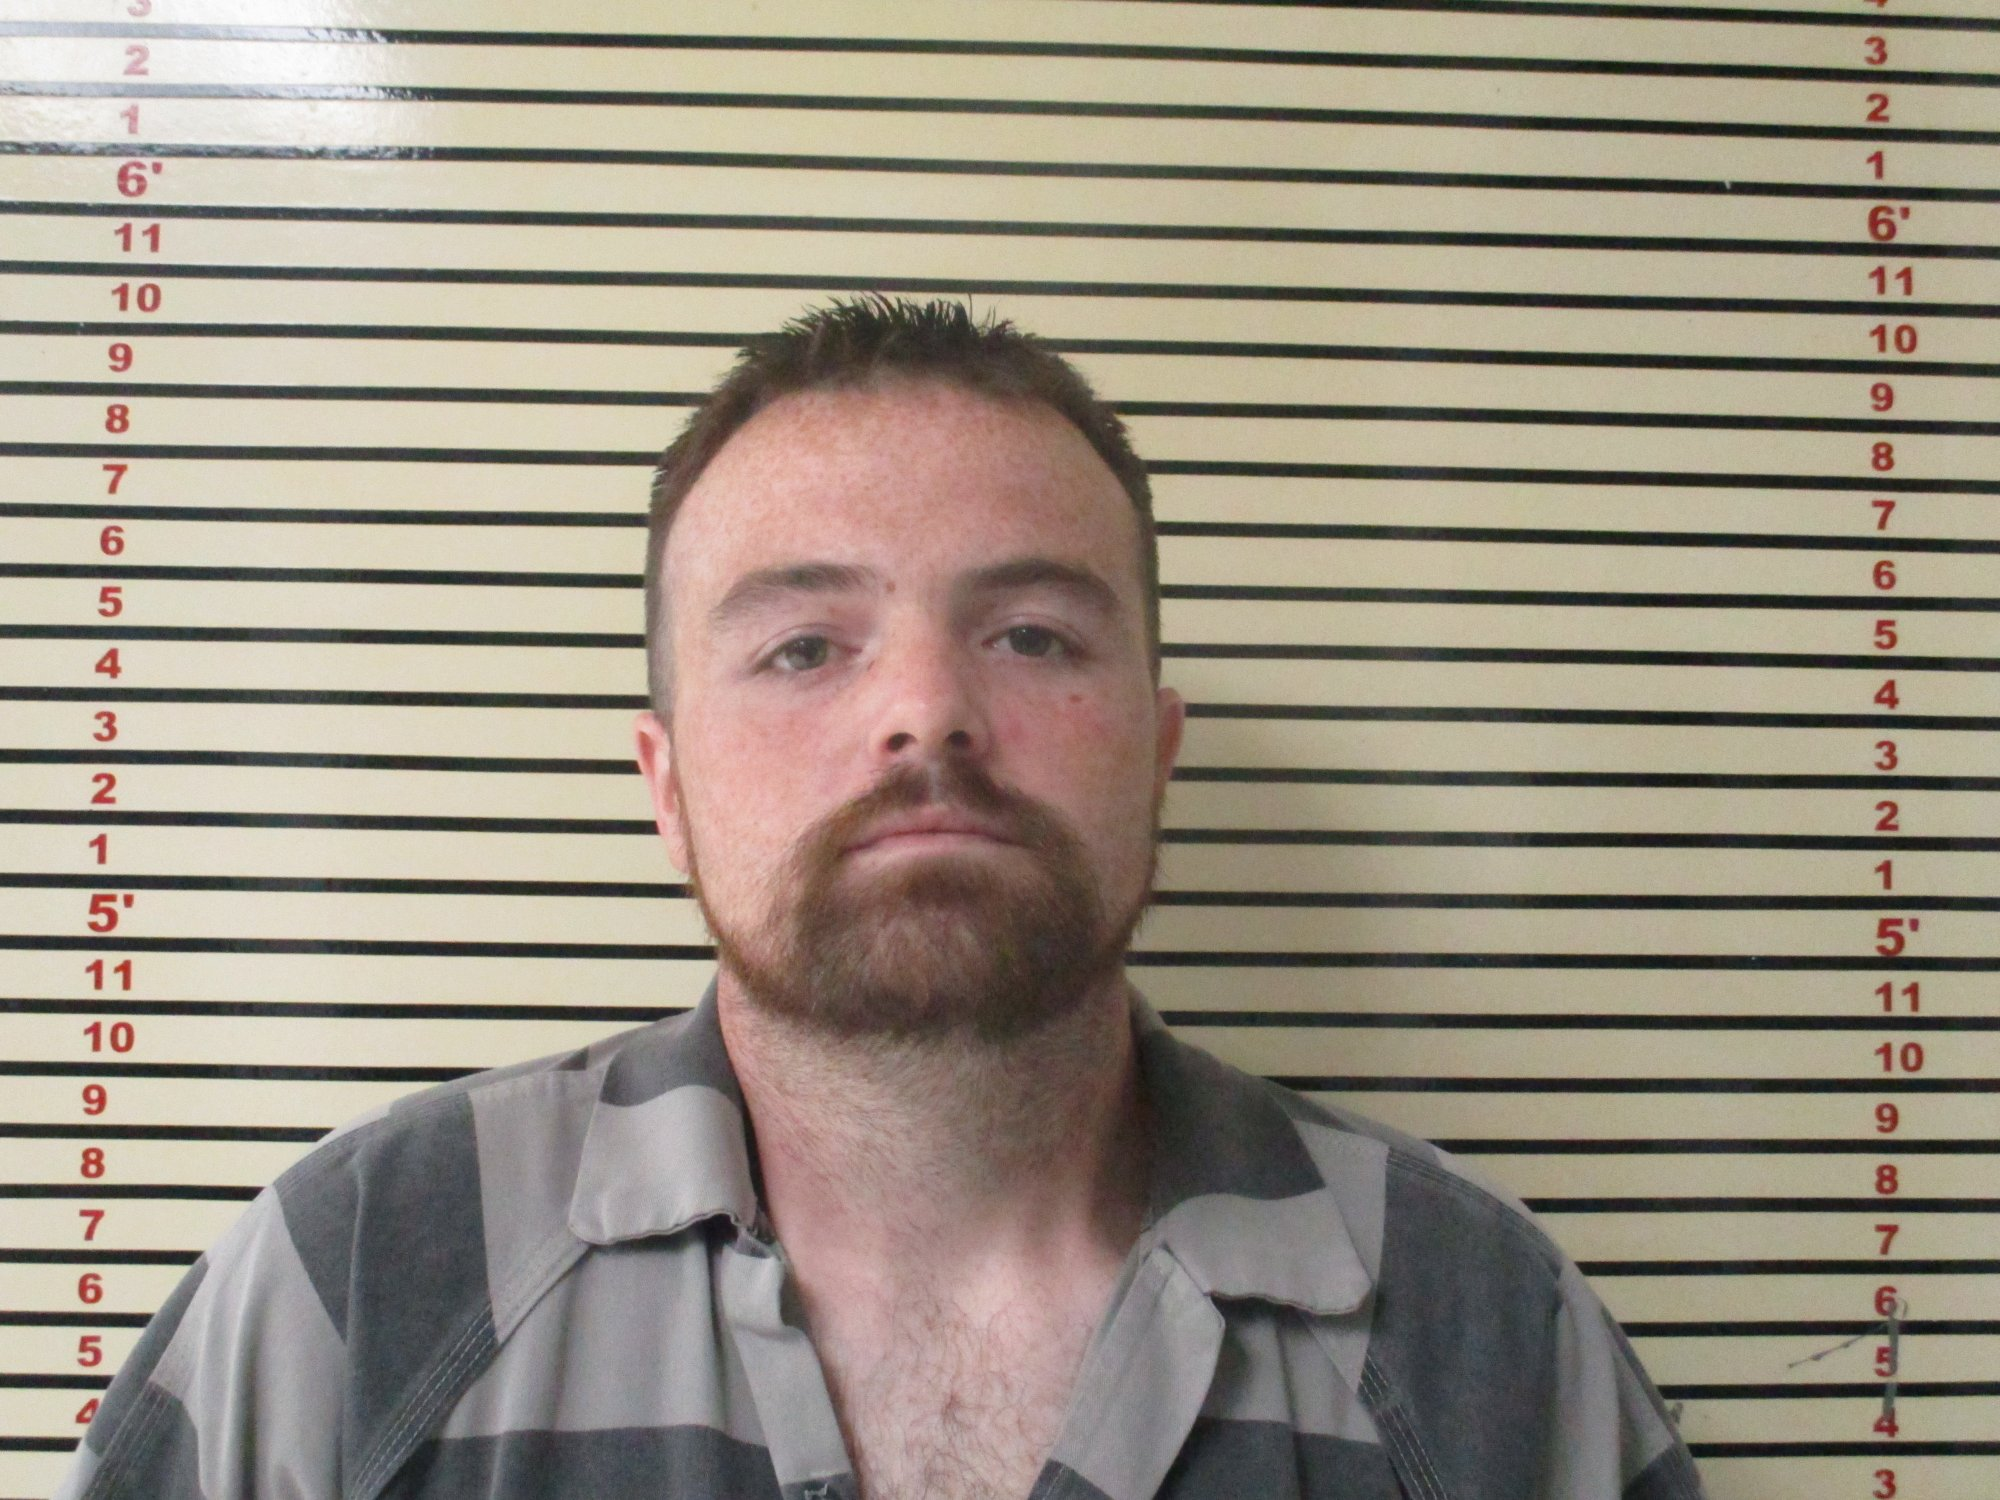 Steven Powers II (photo courtesy of Wagoner County Sheriff's Department)